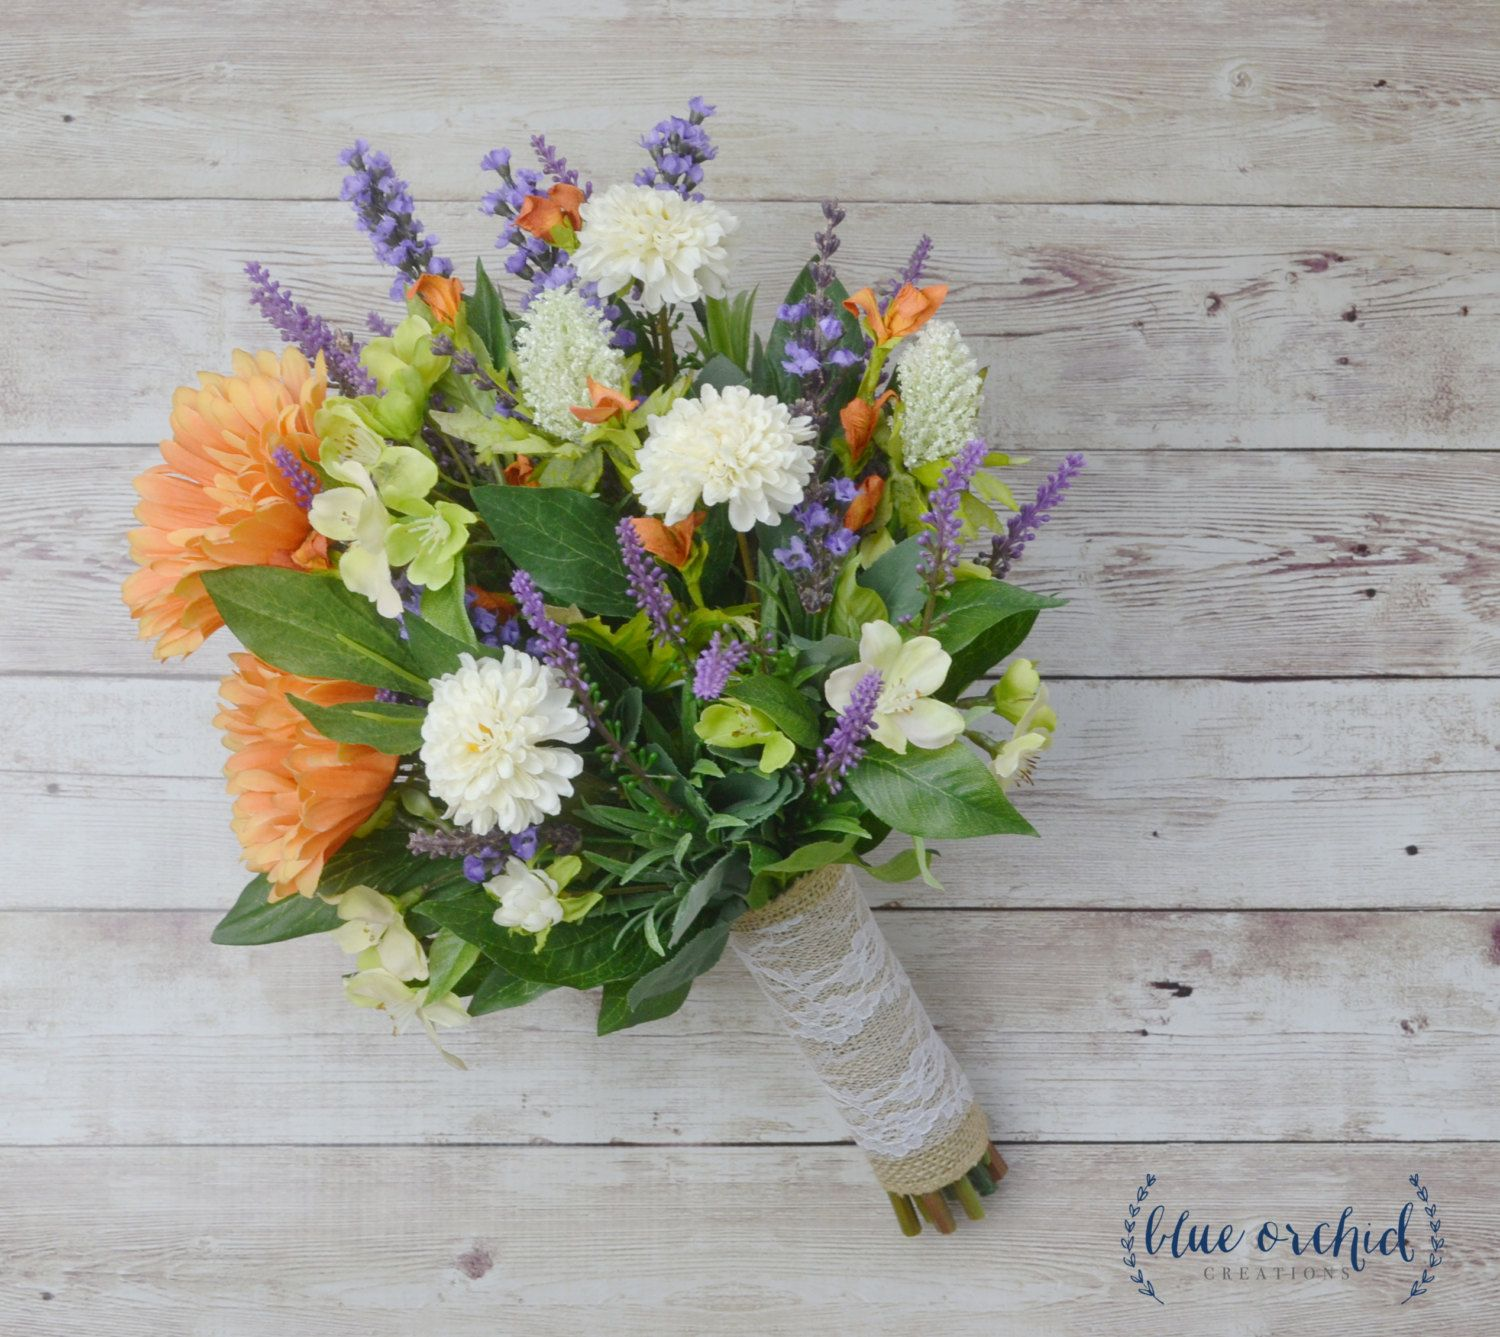 Wildflower Bouquet Wedding Bouquet Fall Wedding Bouquet Fall Bouquet Bridal Bouquet Silk Bouquet Lavender Bouquet Silk Flowers Fall Fall Wedding Bouquets Wildflower Bridal Bouquets Wedding Bouquets